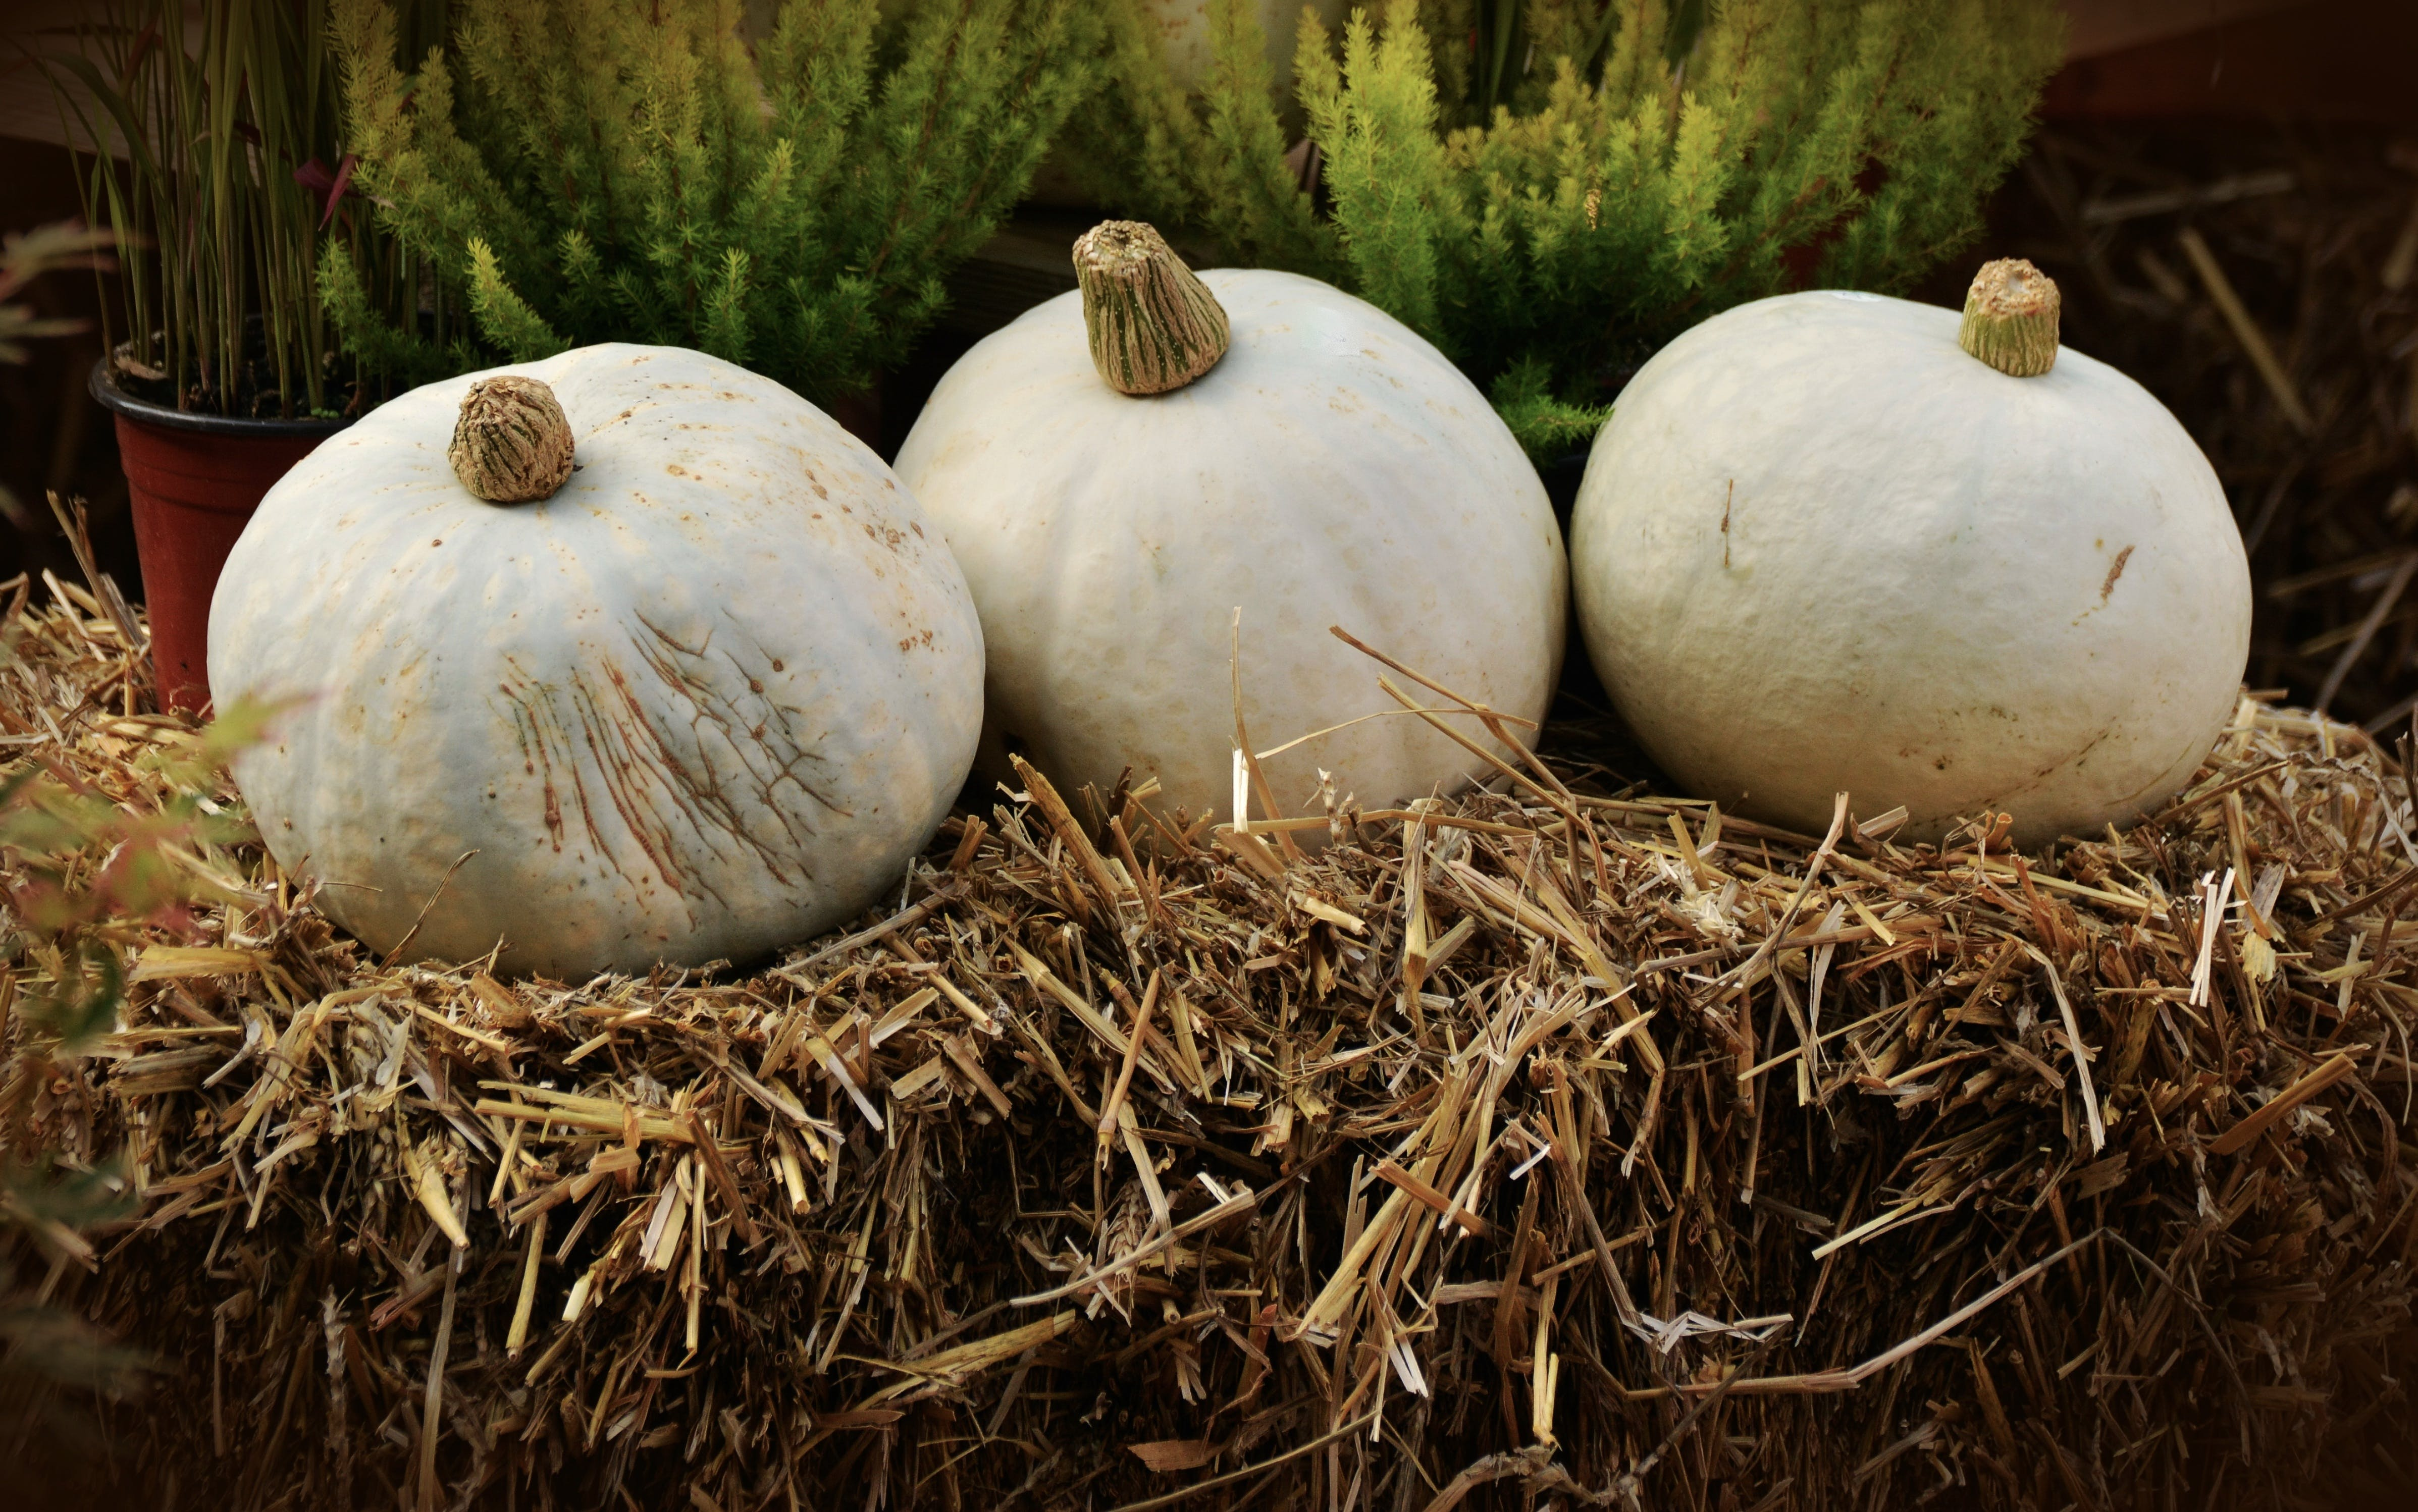 White Round Vegetable Piled on Hay Near Green Leaf Plant